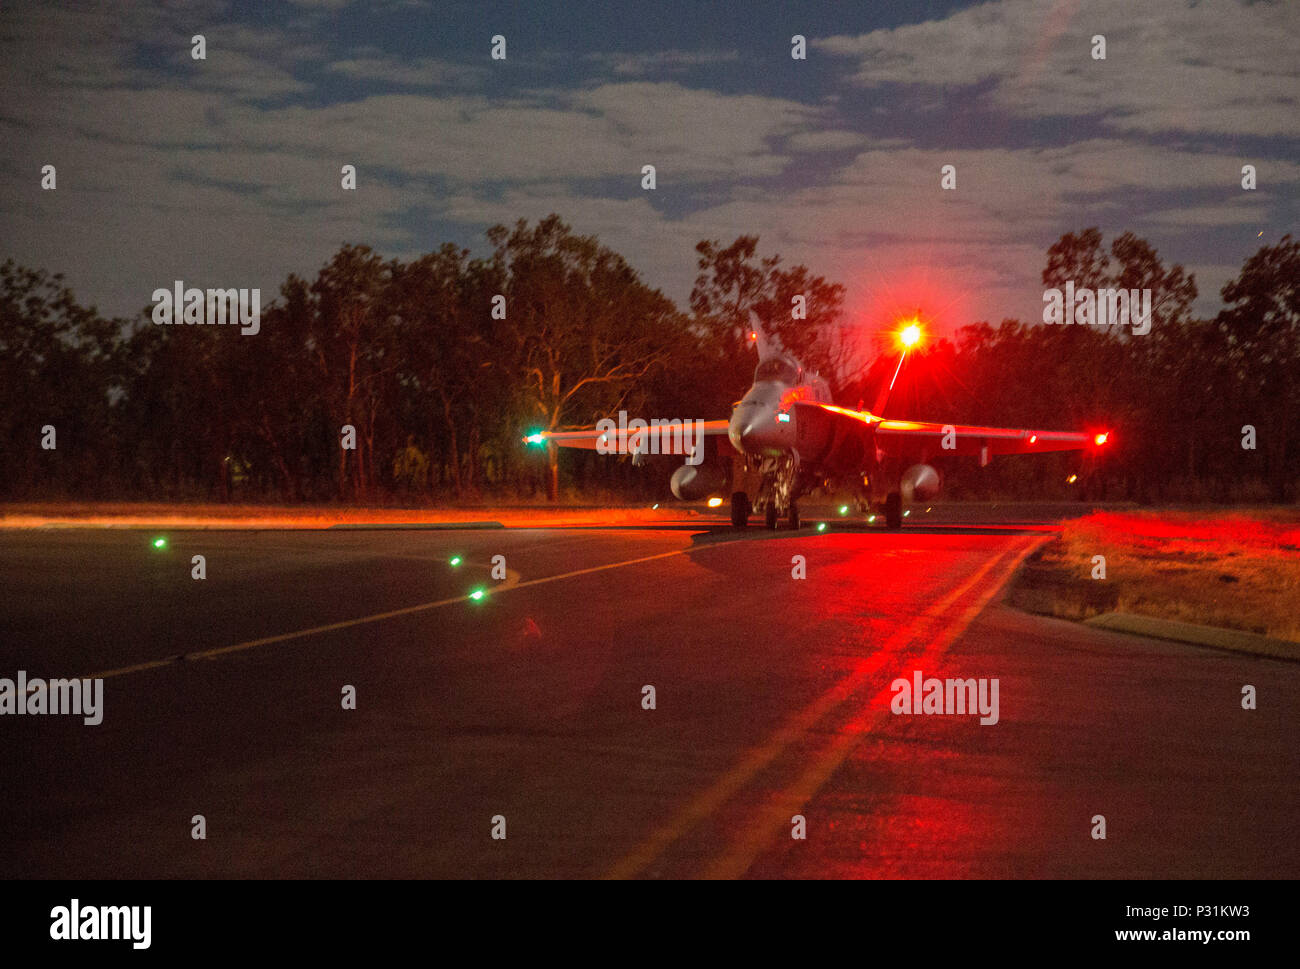 An F/A-18C Hornet assigned to Marine Fighter Attack Squadron (VMFA) 122 taxis to the runway for a night flight during Exercise Pitch Black 2016 at Royal Australian Air Force Base Tindal, Australia, Aug. 17, 2016. The flying squadron executed large force close air support, air interdiction, armed reconnaissance, and strike coordination and reconnaissance missions over the three week training evolution. The biennial, multinational exercise involves approximately 10 allied nations and prepares these forces for possible real-world scenarios. The bilateral effort amongst Exercise Pitch Black 2016 f - Stock Image